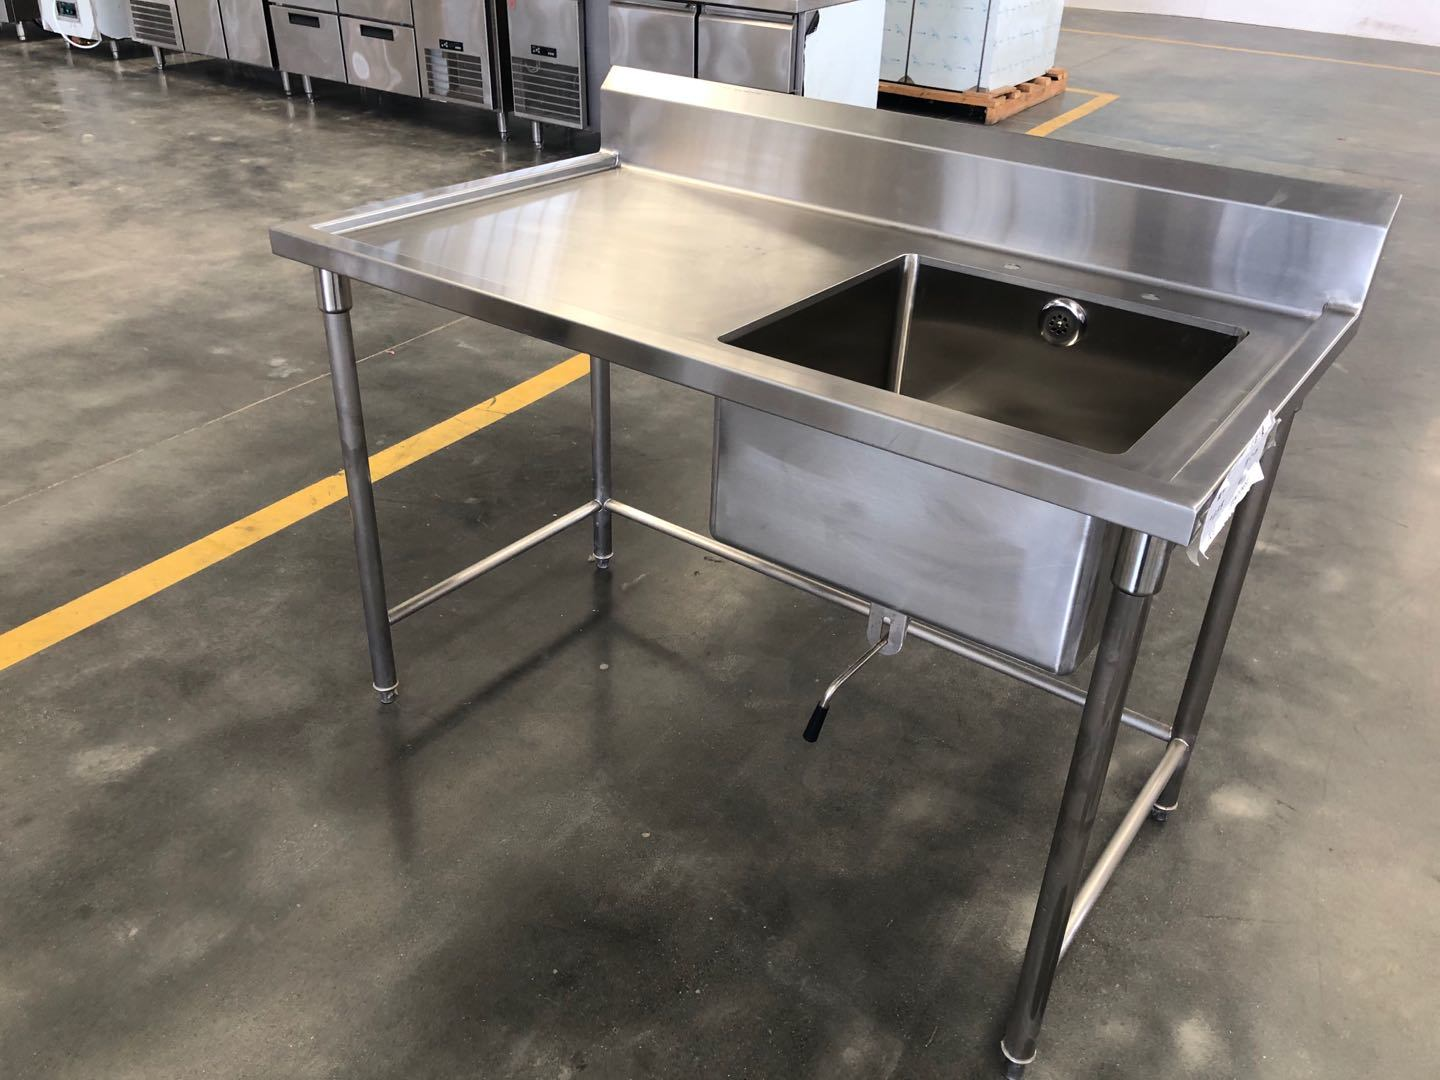 china stainless steel sink wash basin